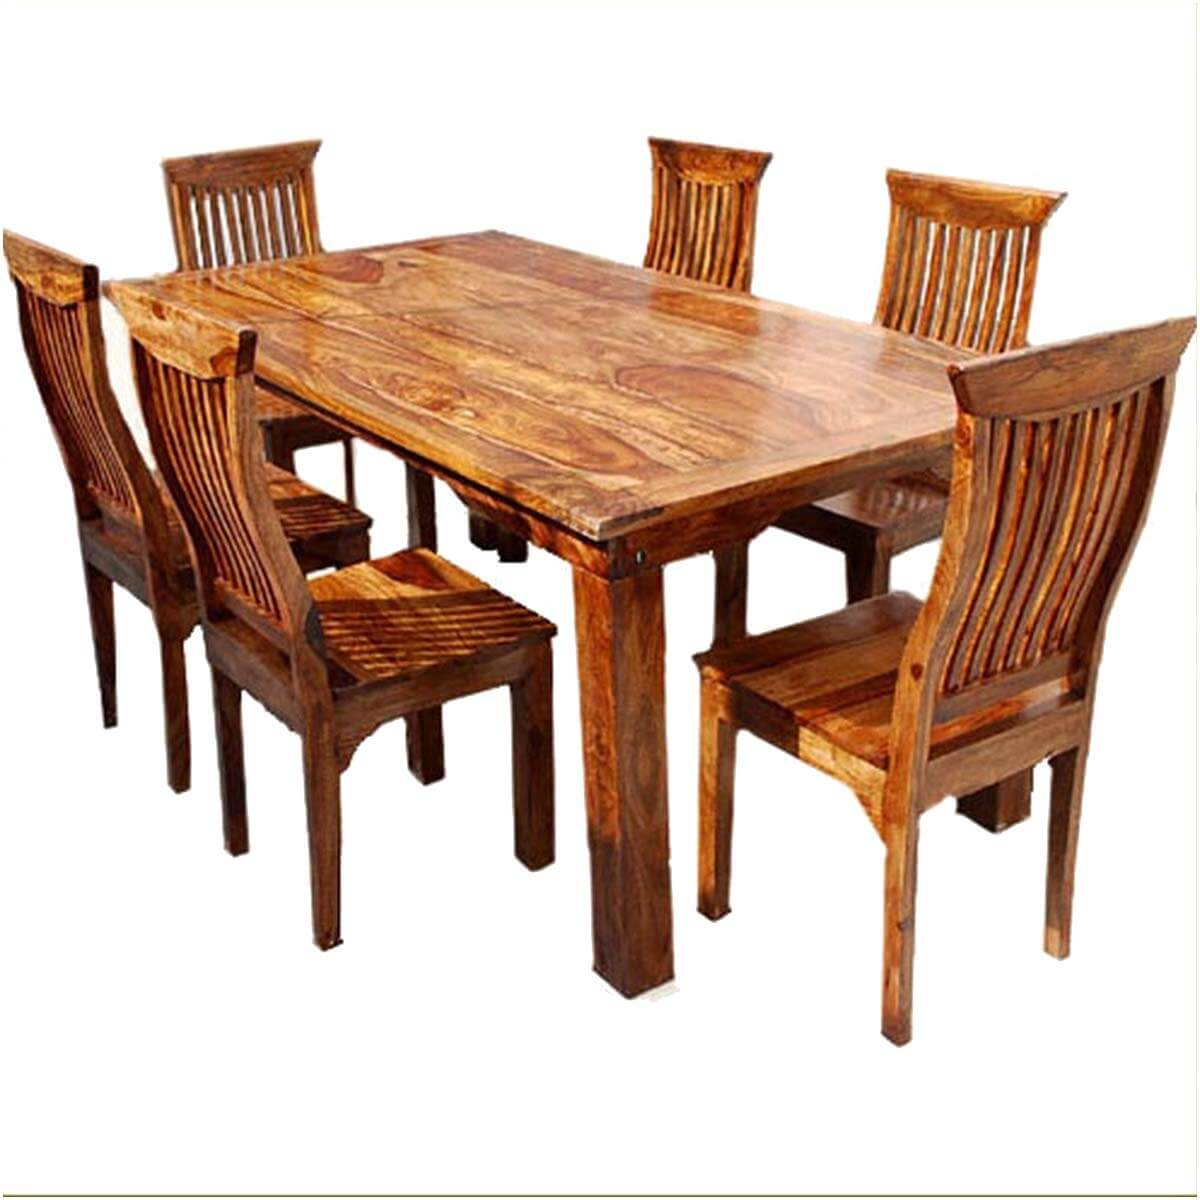 Dining Table Sets ~ Dallas ranch solid wood rustic dining table chairs hutch set